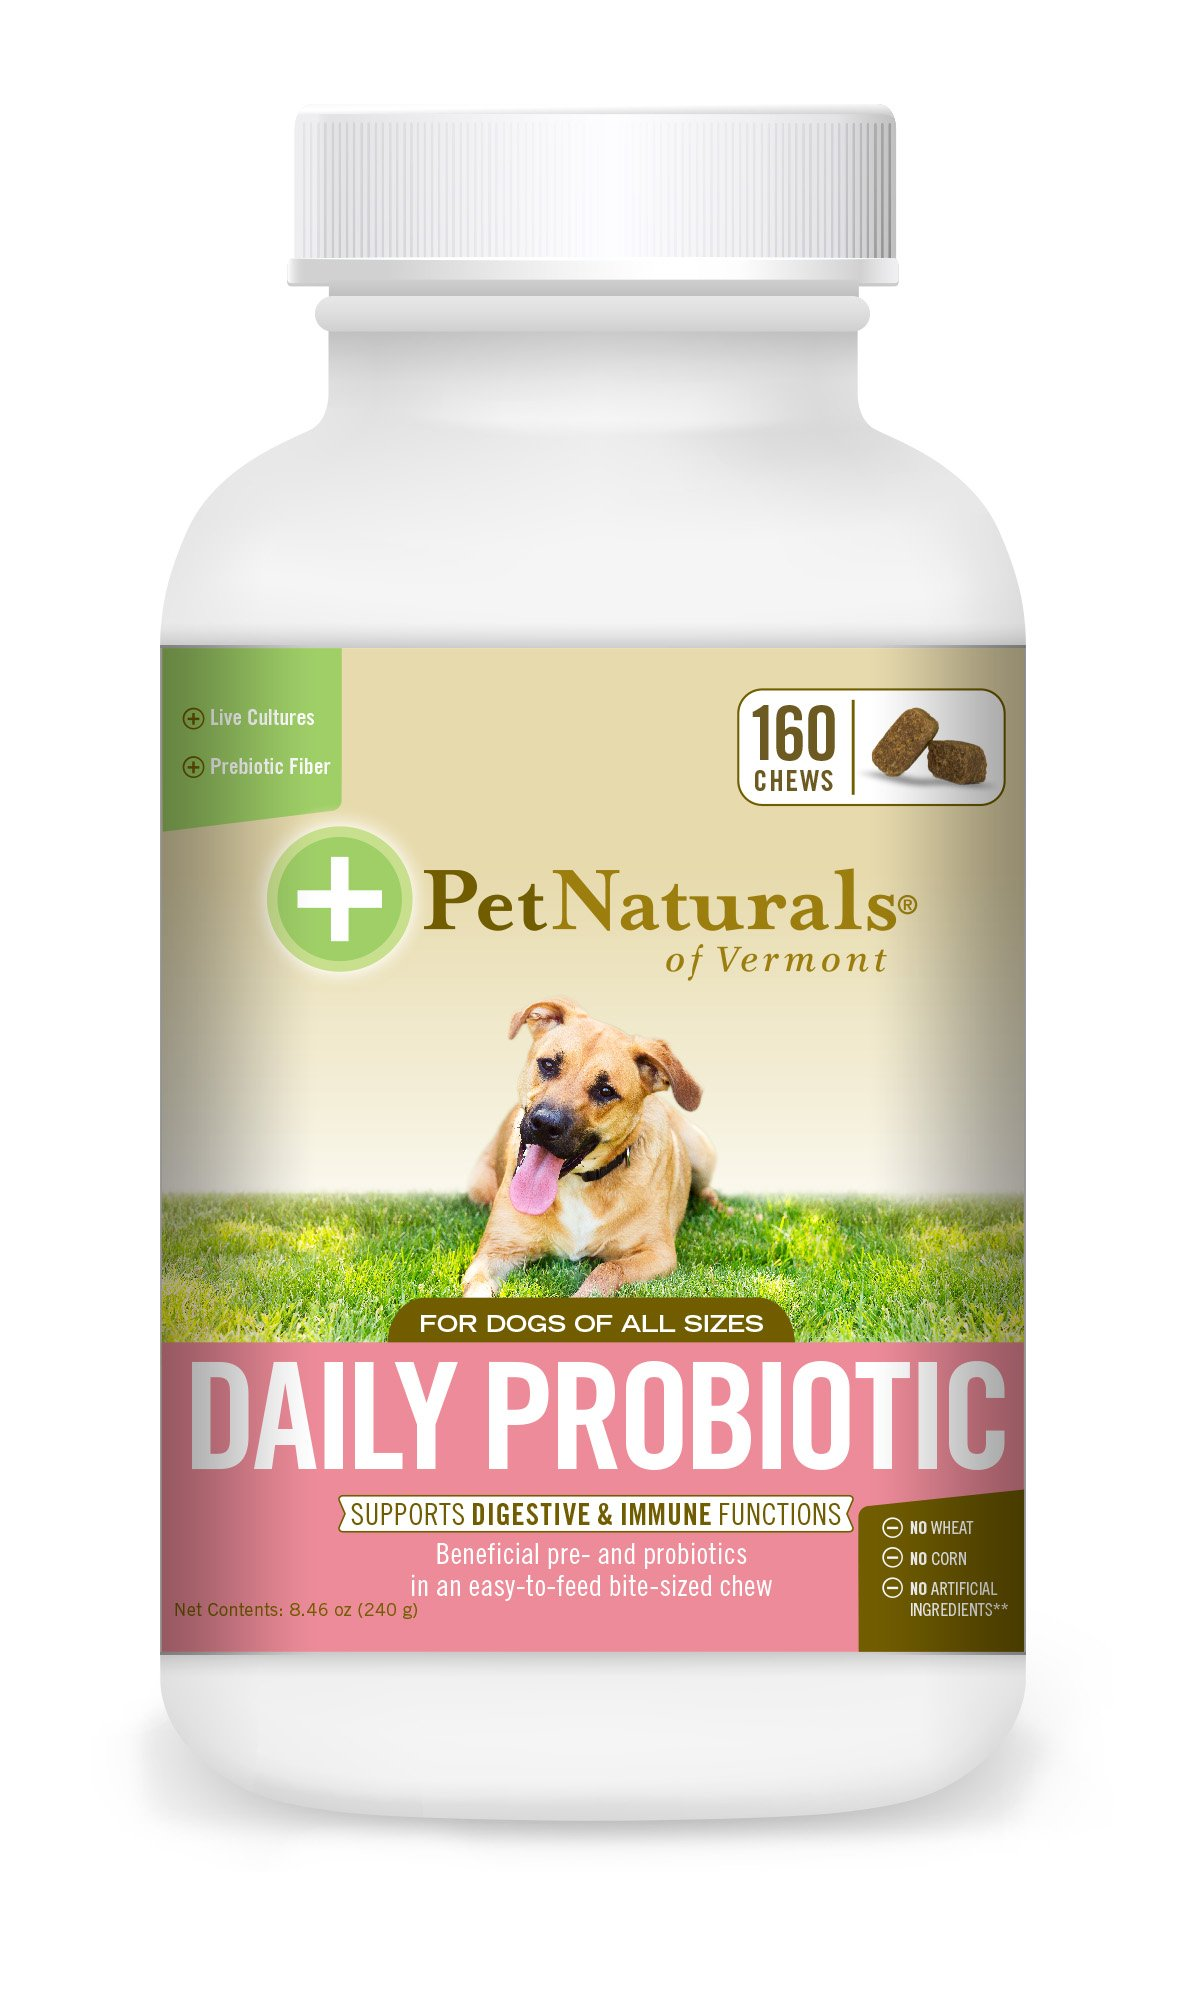 Pet Naturals of Vermont - Daily Probiotic for Dogs, Digestive Health Supplement, 160 Bite Sized Chews by Pet Naturals